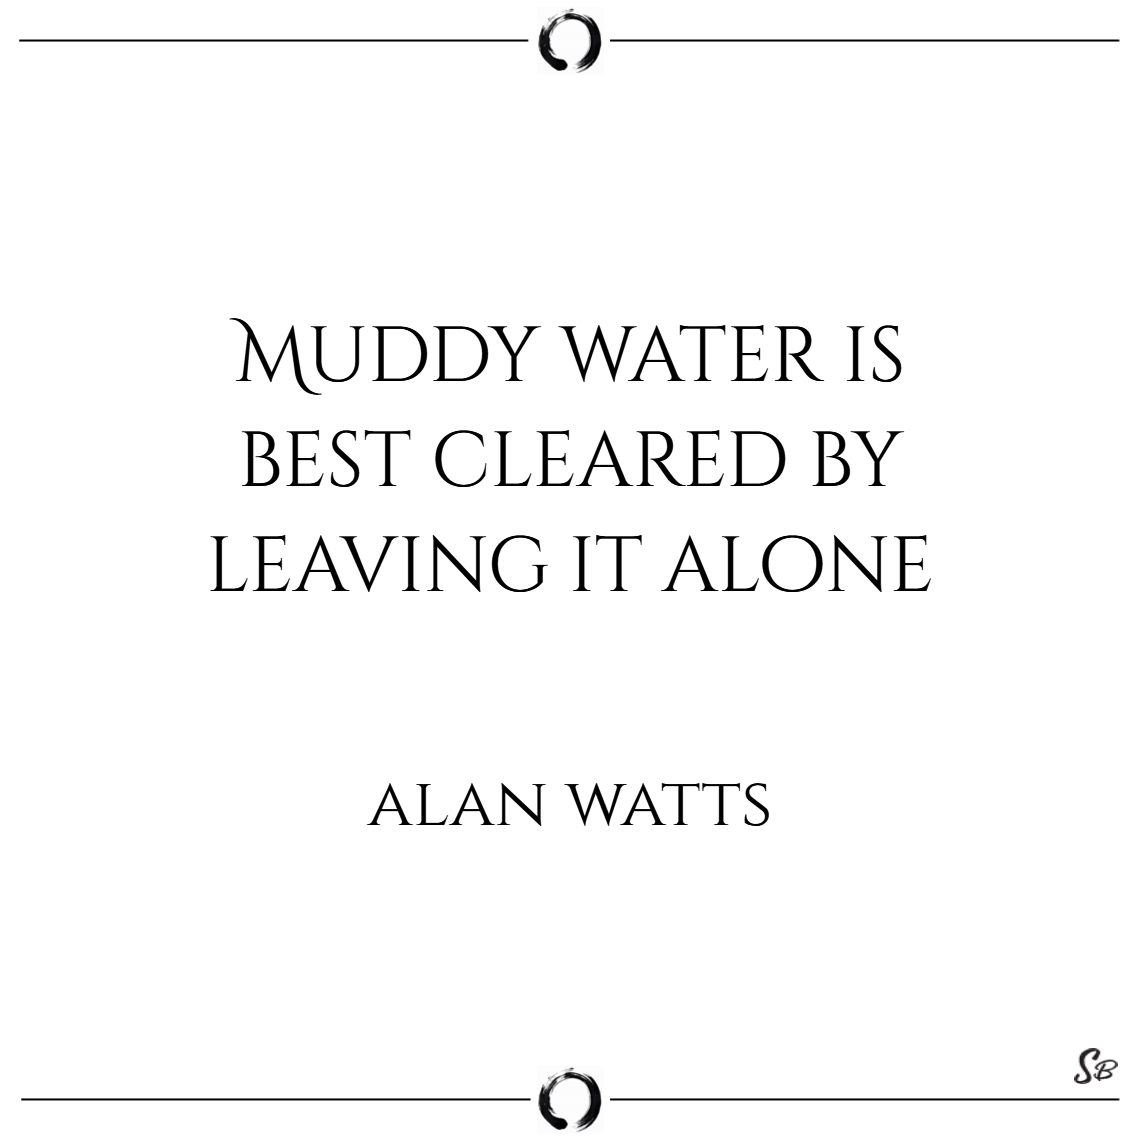 Muddy water is best cleared by leaving it alone. –